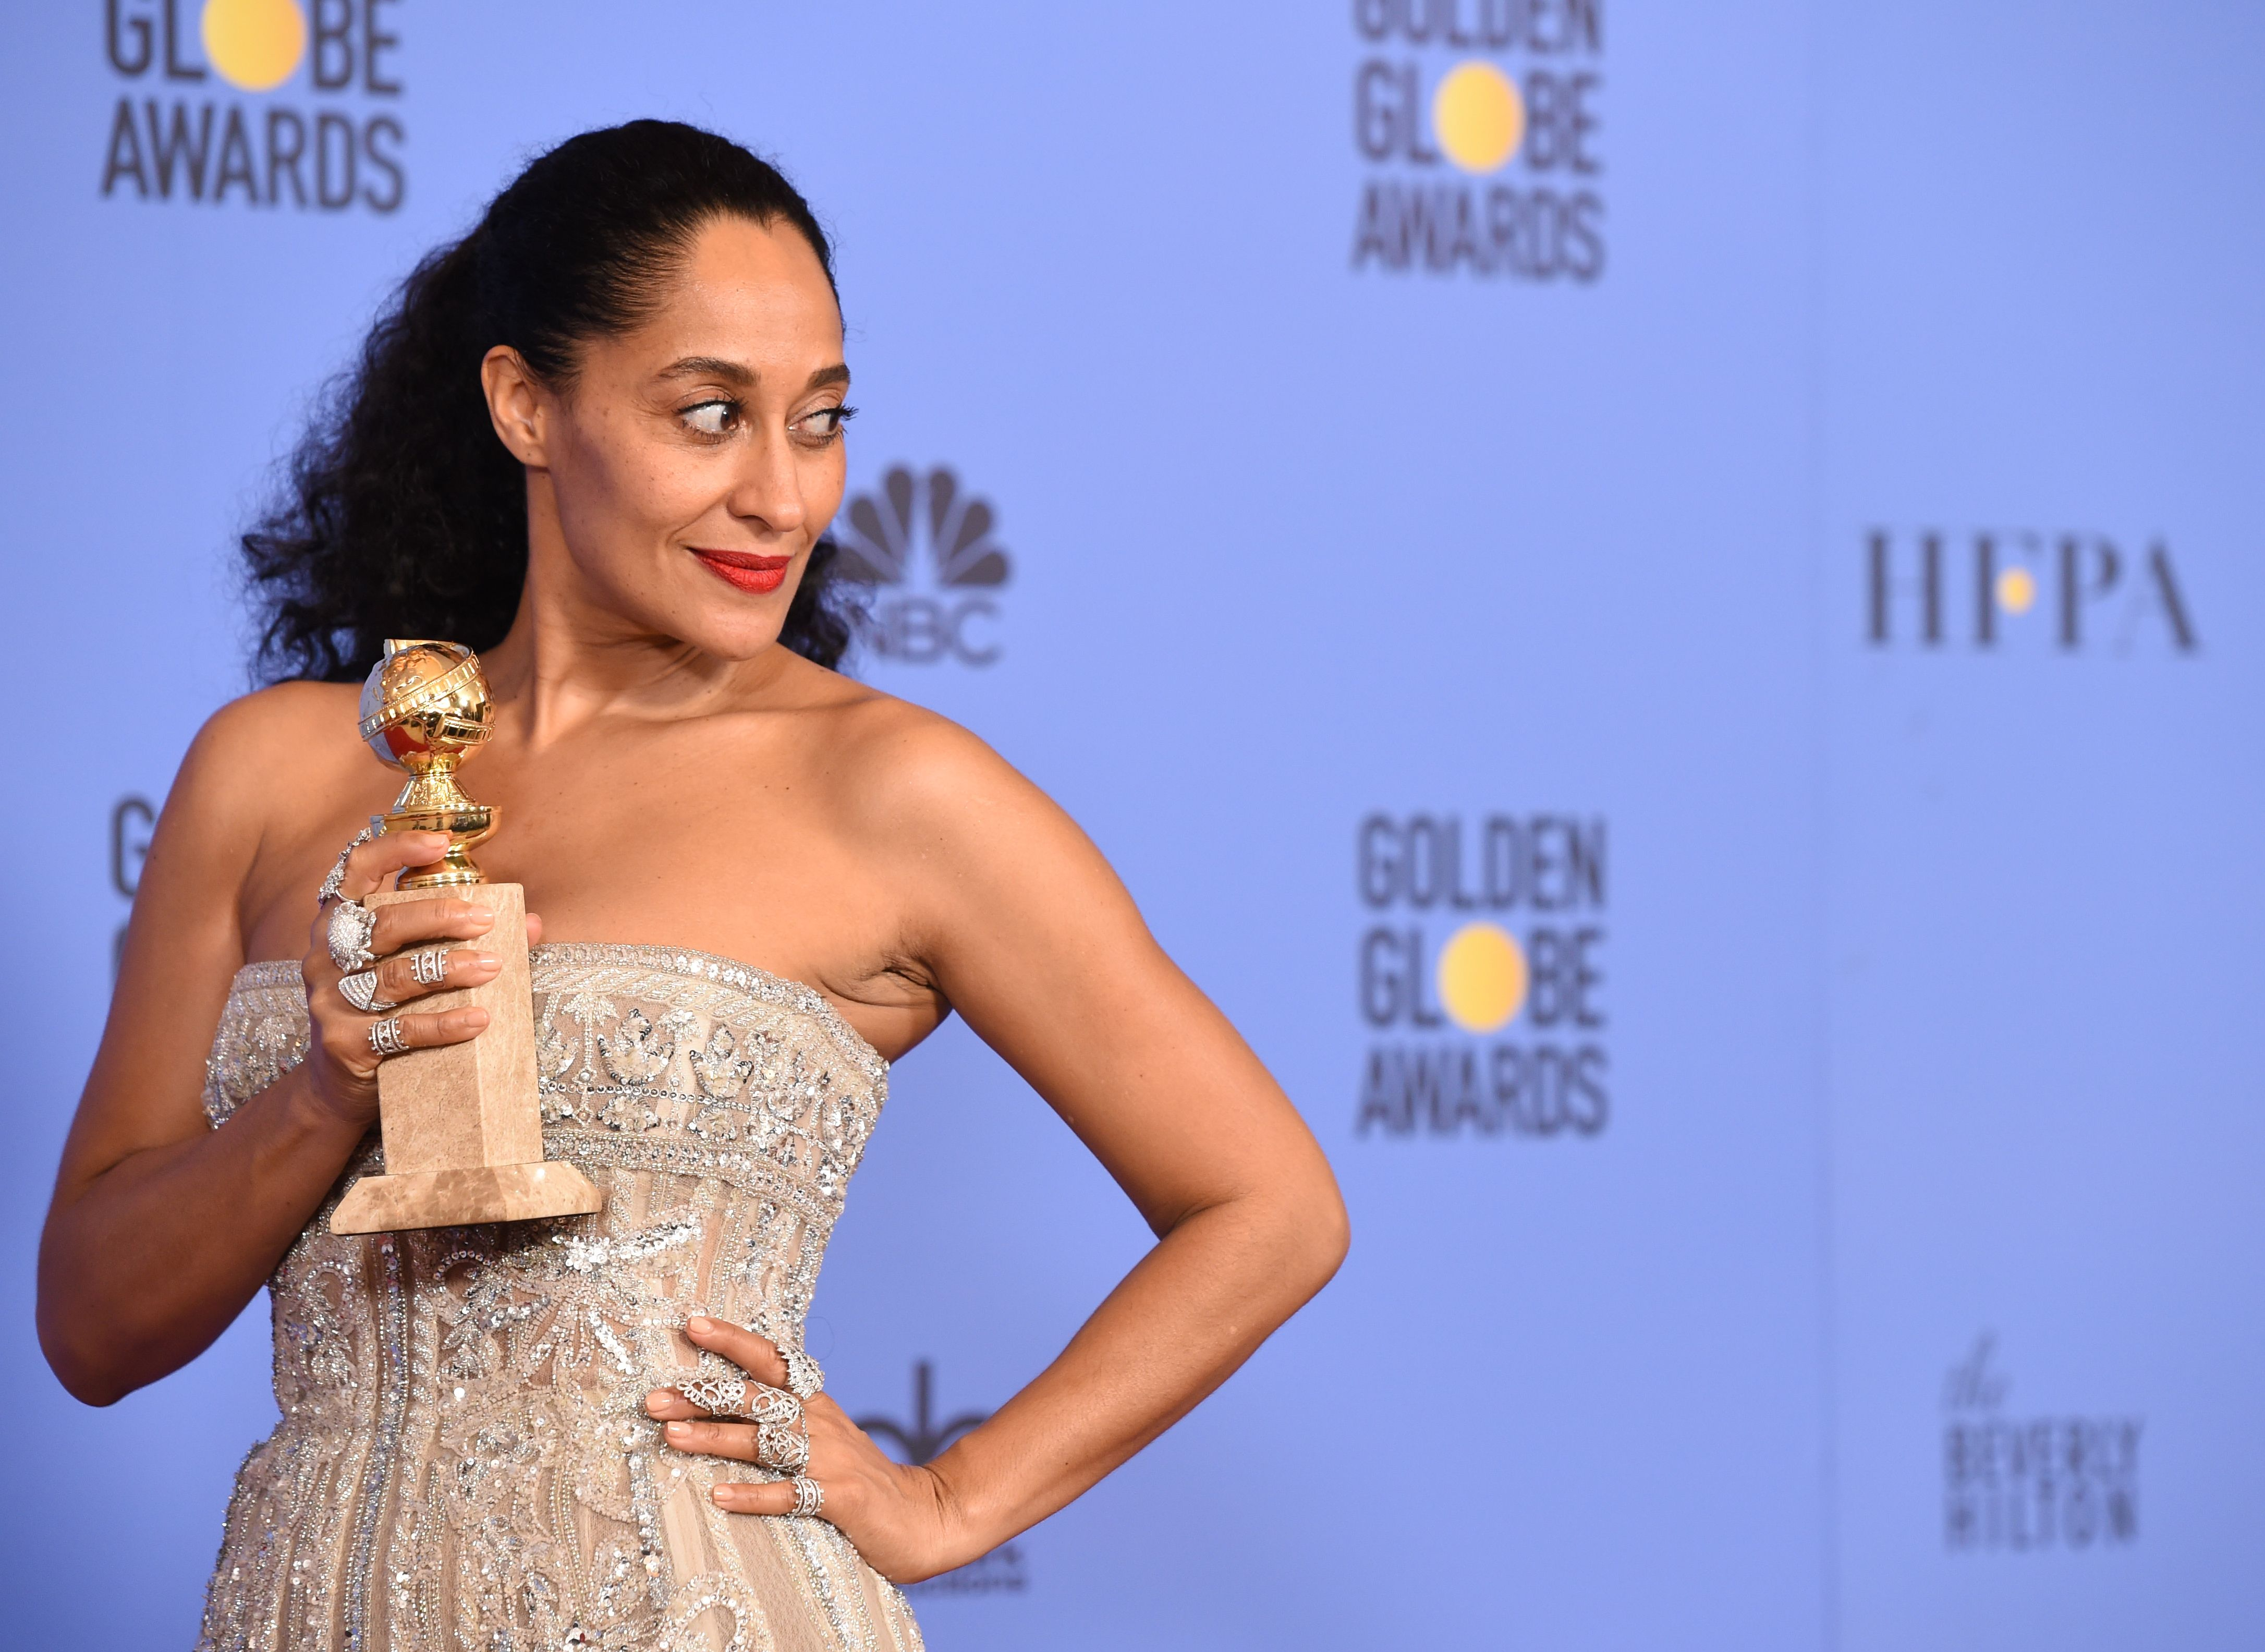 Tracee Ellis Ross has the most hilarious plan to show off her Golden Globe